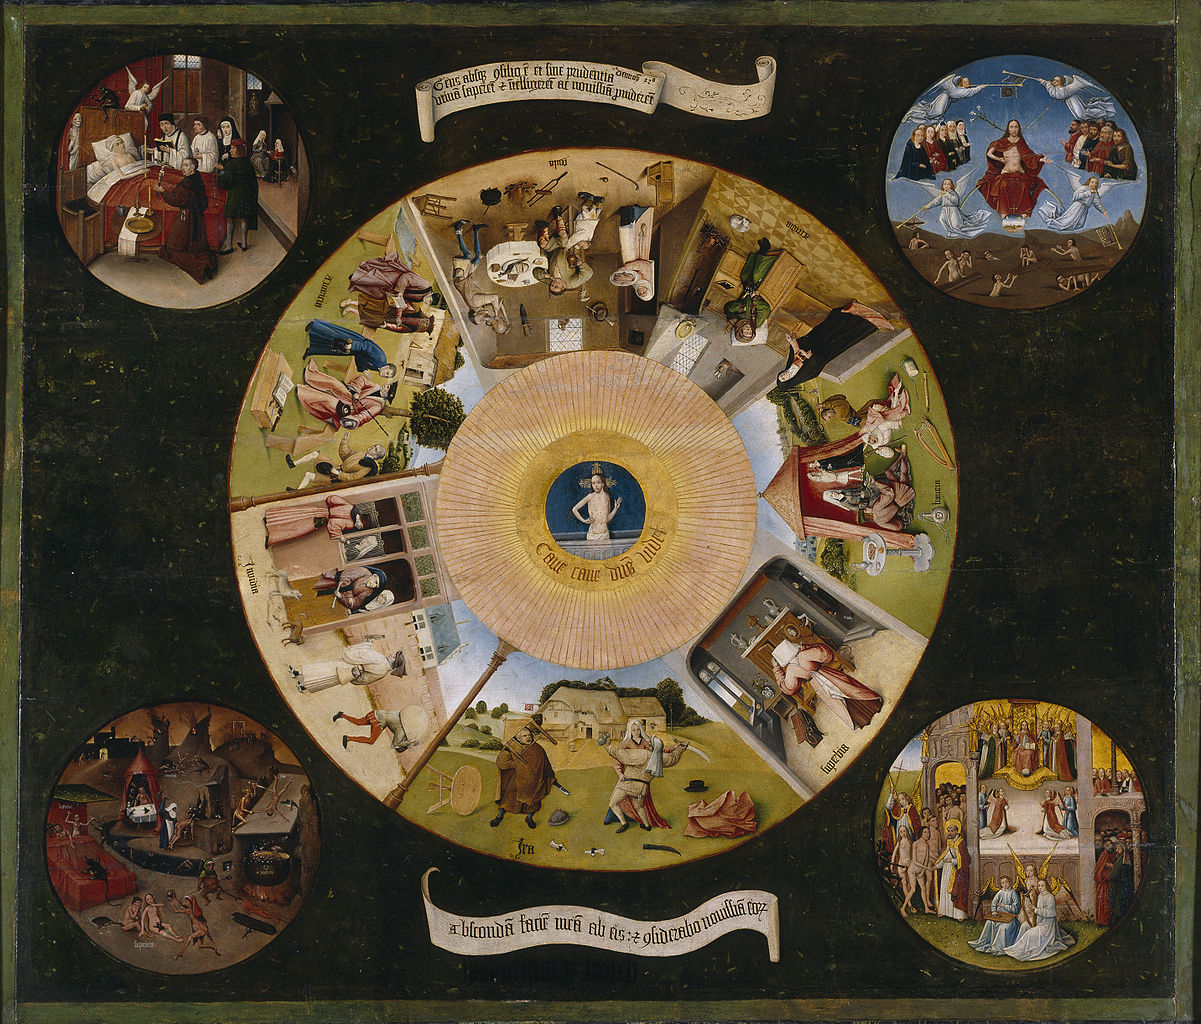 http://upload.wikimedia.org/wikipedia/commons/thumb/0/03/Hieronymus_Bosch-_The_Seven_Deadly_Sins_and_the_Four_Last_Things.JPG/1201px-Hieronymus_Bosch-_The_Seven_Deadly_Sins_and_the_Four_Last_Things.JPG